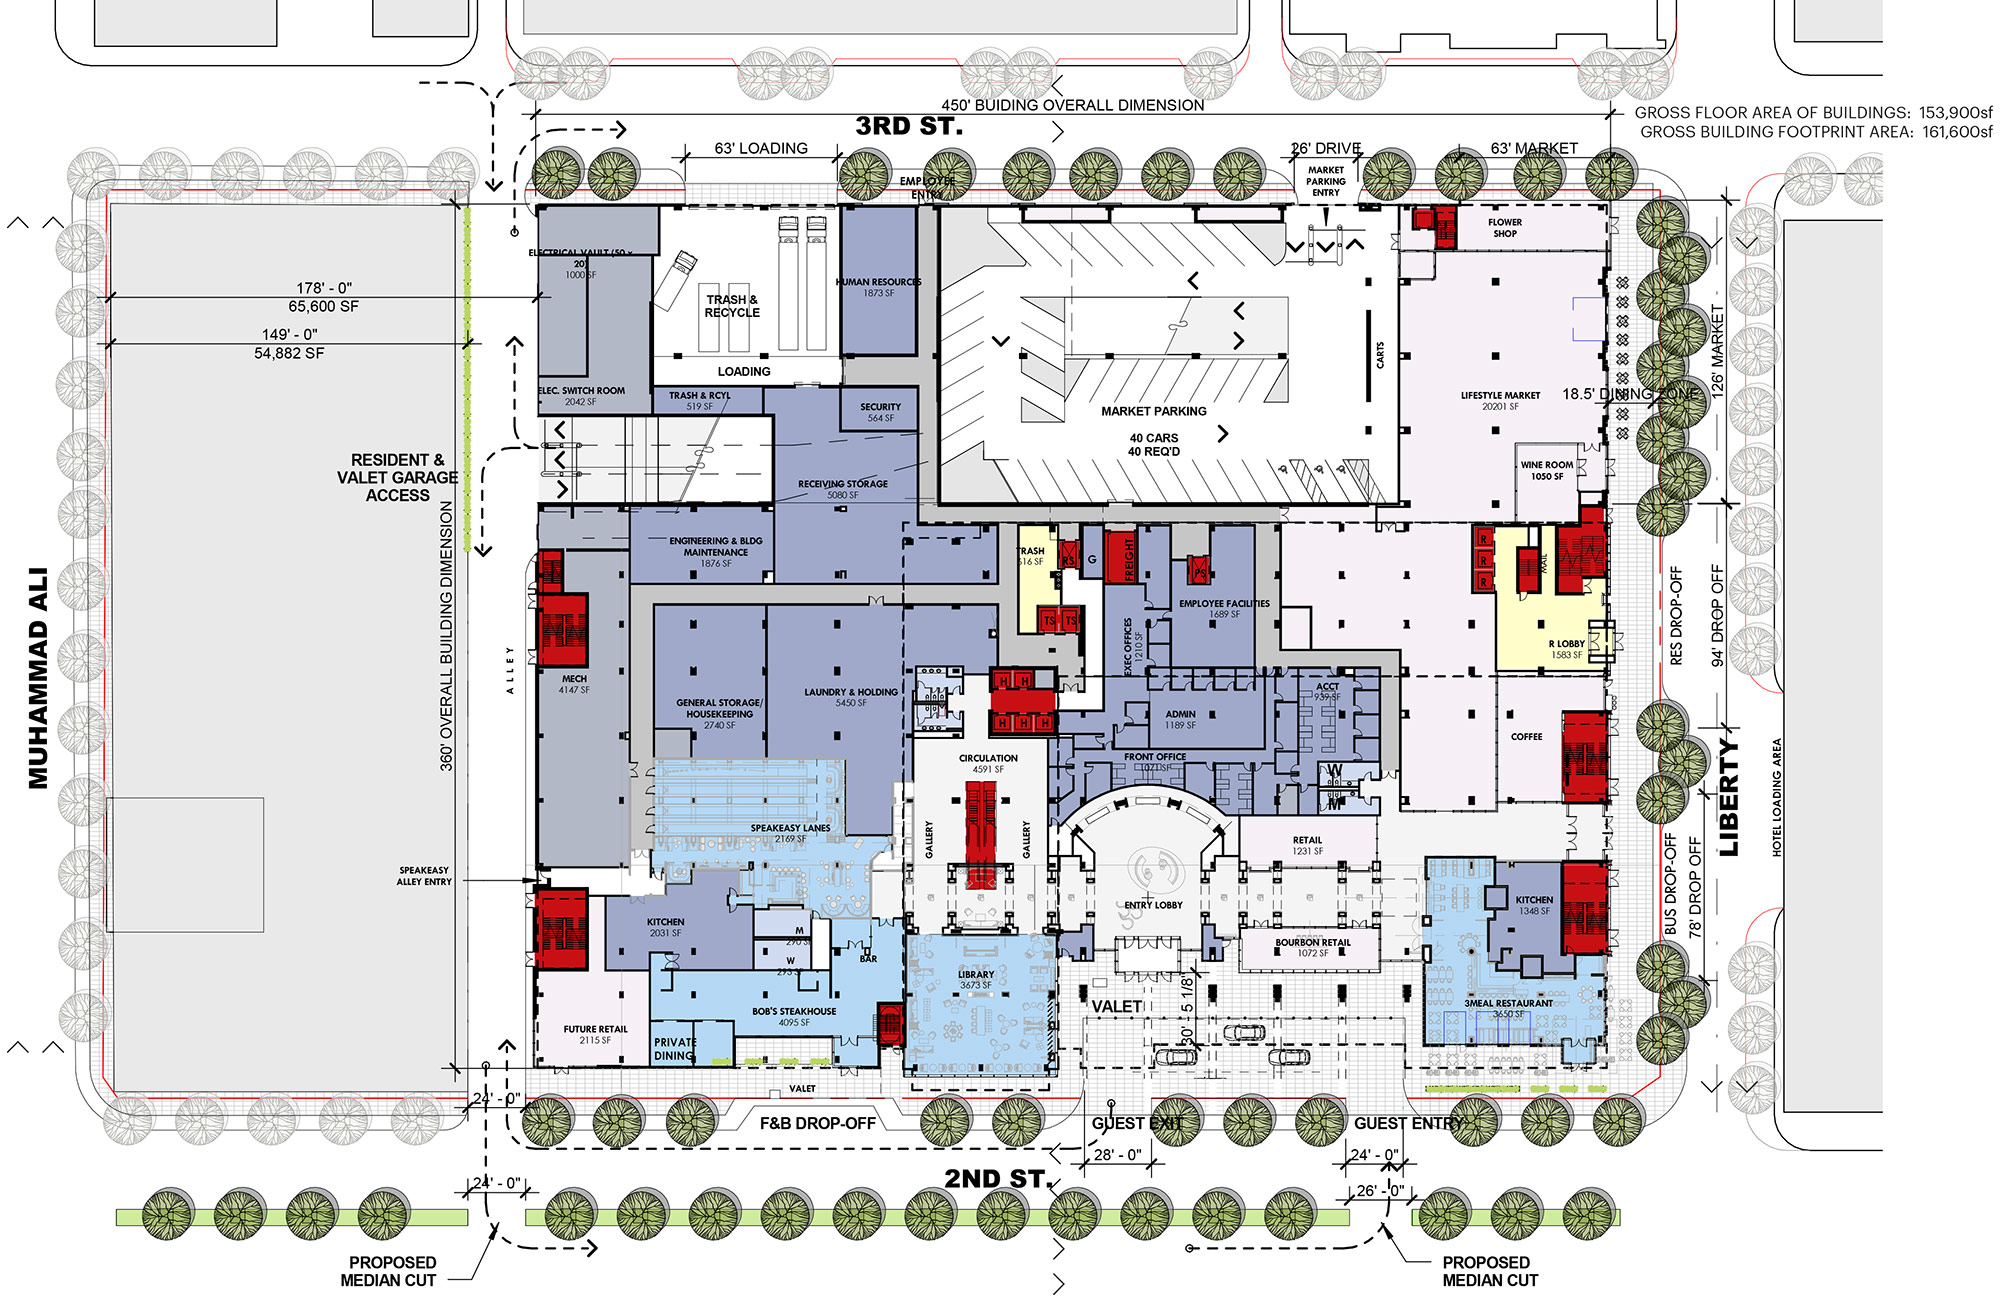 Epic Ground floor plan of the Omni Hotel showing the grey future development side on the